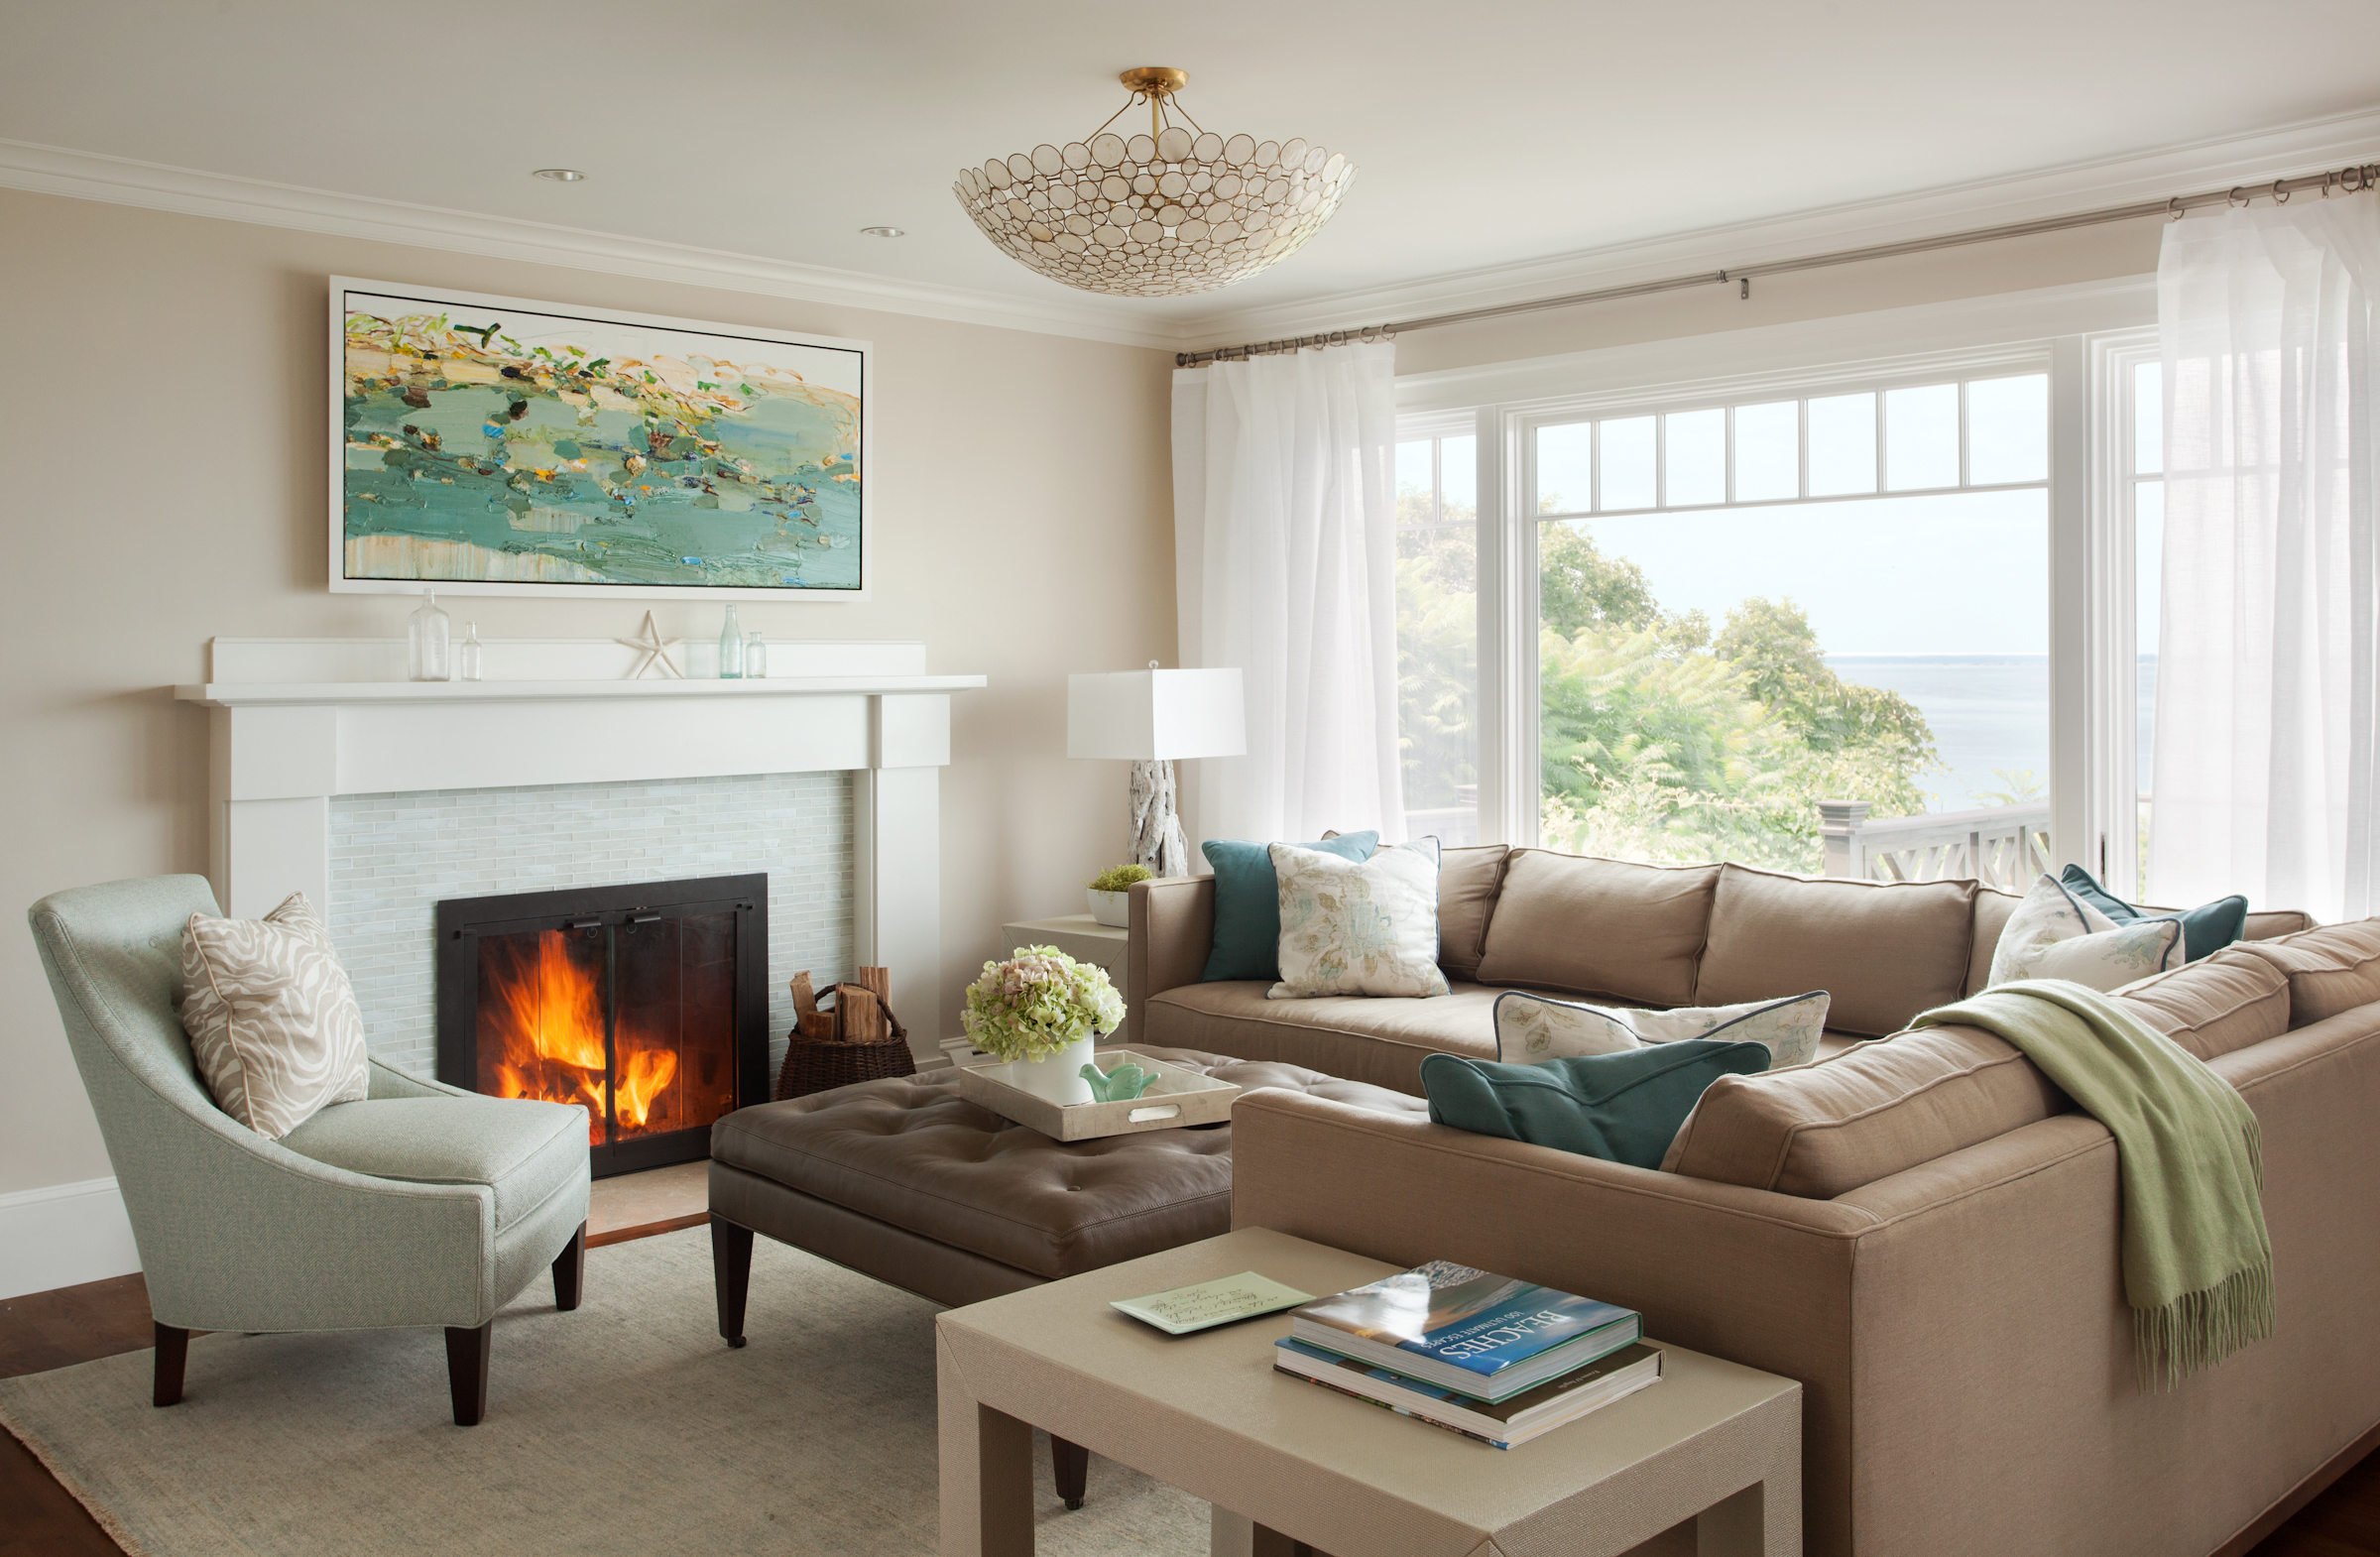 Plymouth Residence Interior Design Styling Assisted In The Renovation And Of A Seaside Home Firm LeBlanc Photography Eric Roth